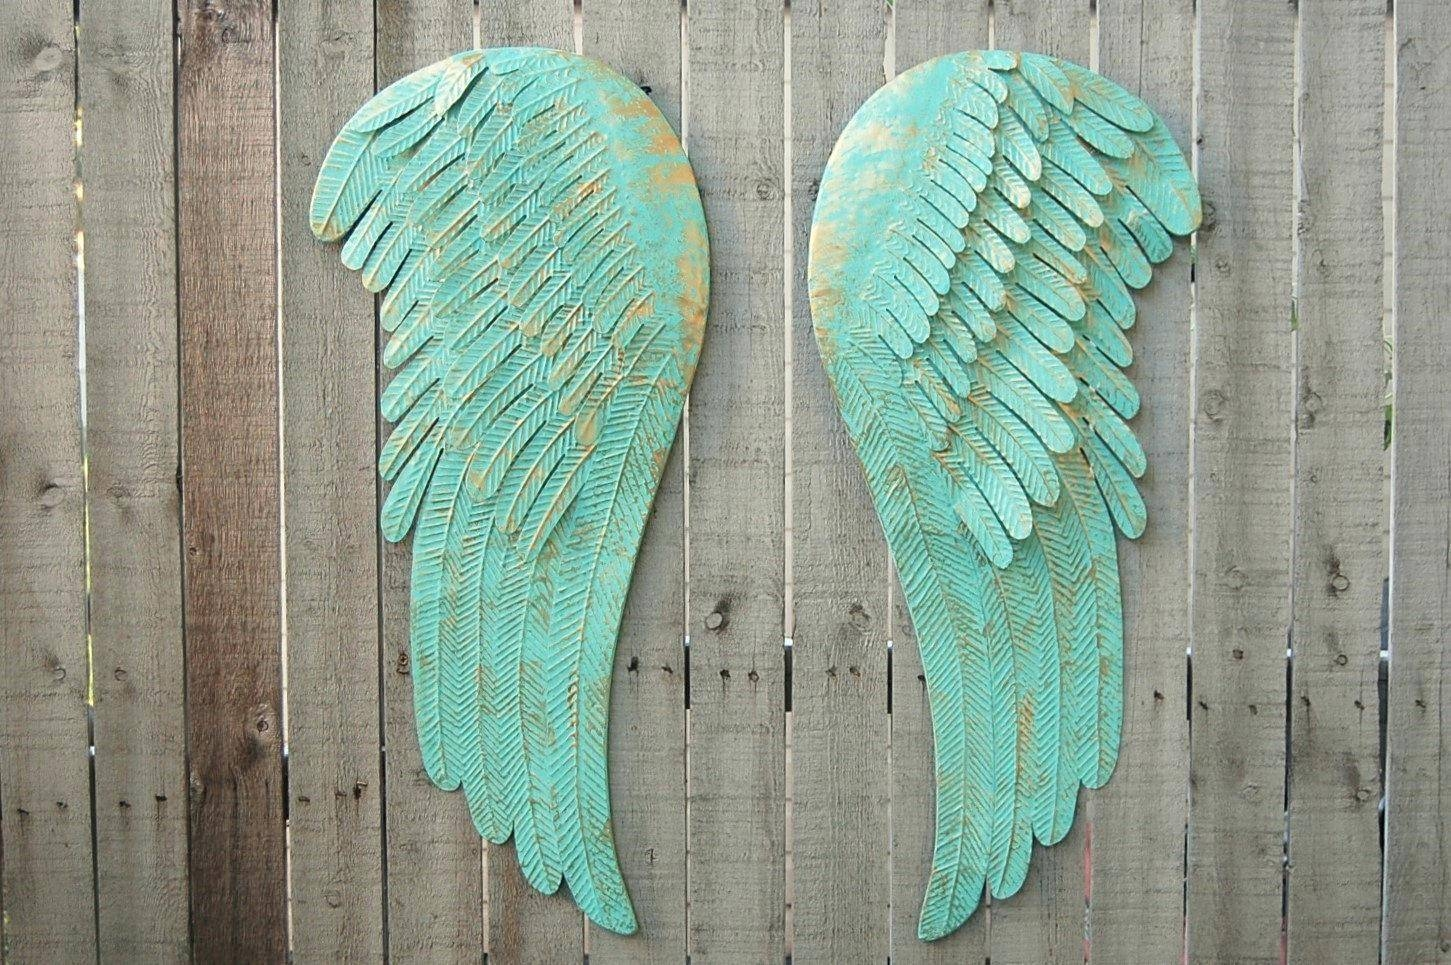 Articles With Angel Wings Wall Art London Label: Marvellous Angel Throughout Current Angel Wings Sculpture Plaque Wall Art (View 6 of 20)